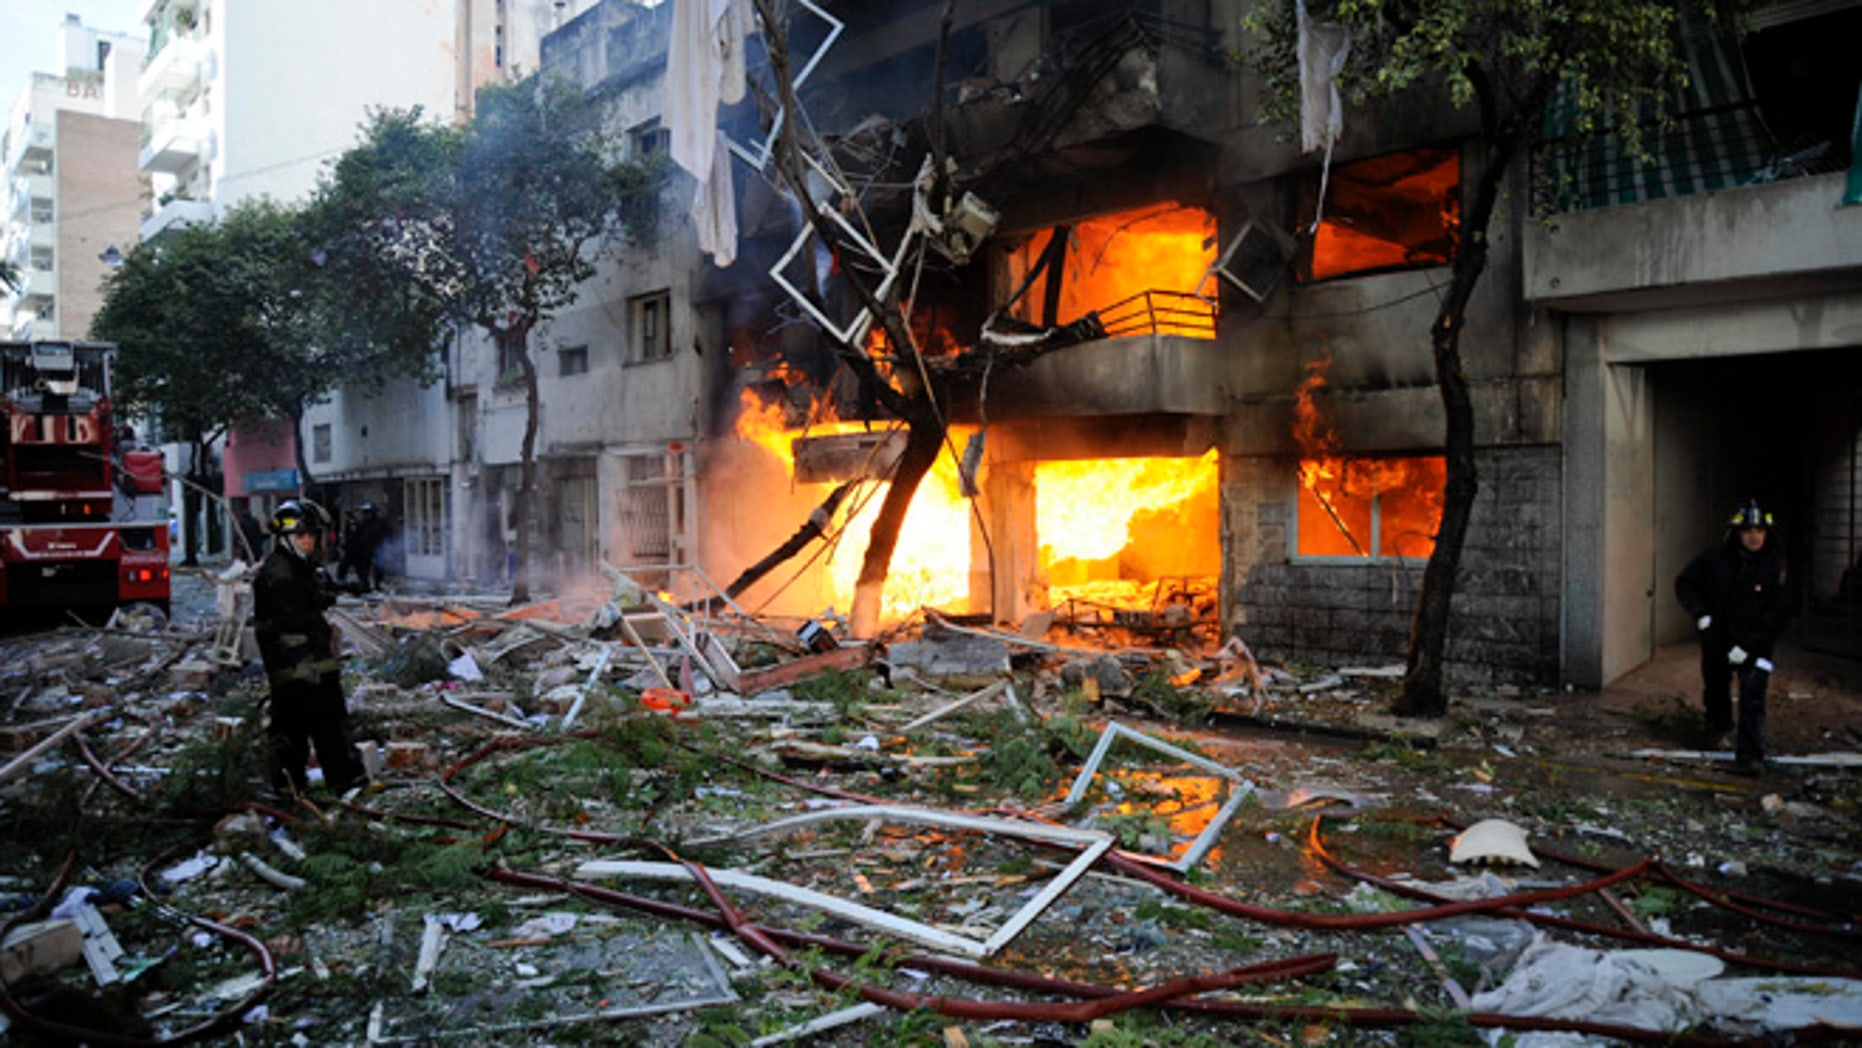 Aug. 6, 2013: Firemen stand in debris caused by a gas explosion that has severely damaged a multi-story apartment building in Rosario, Argentina.